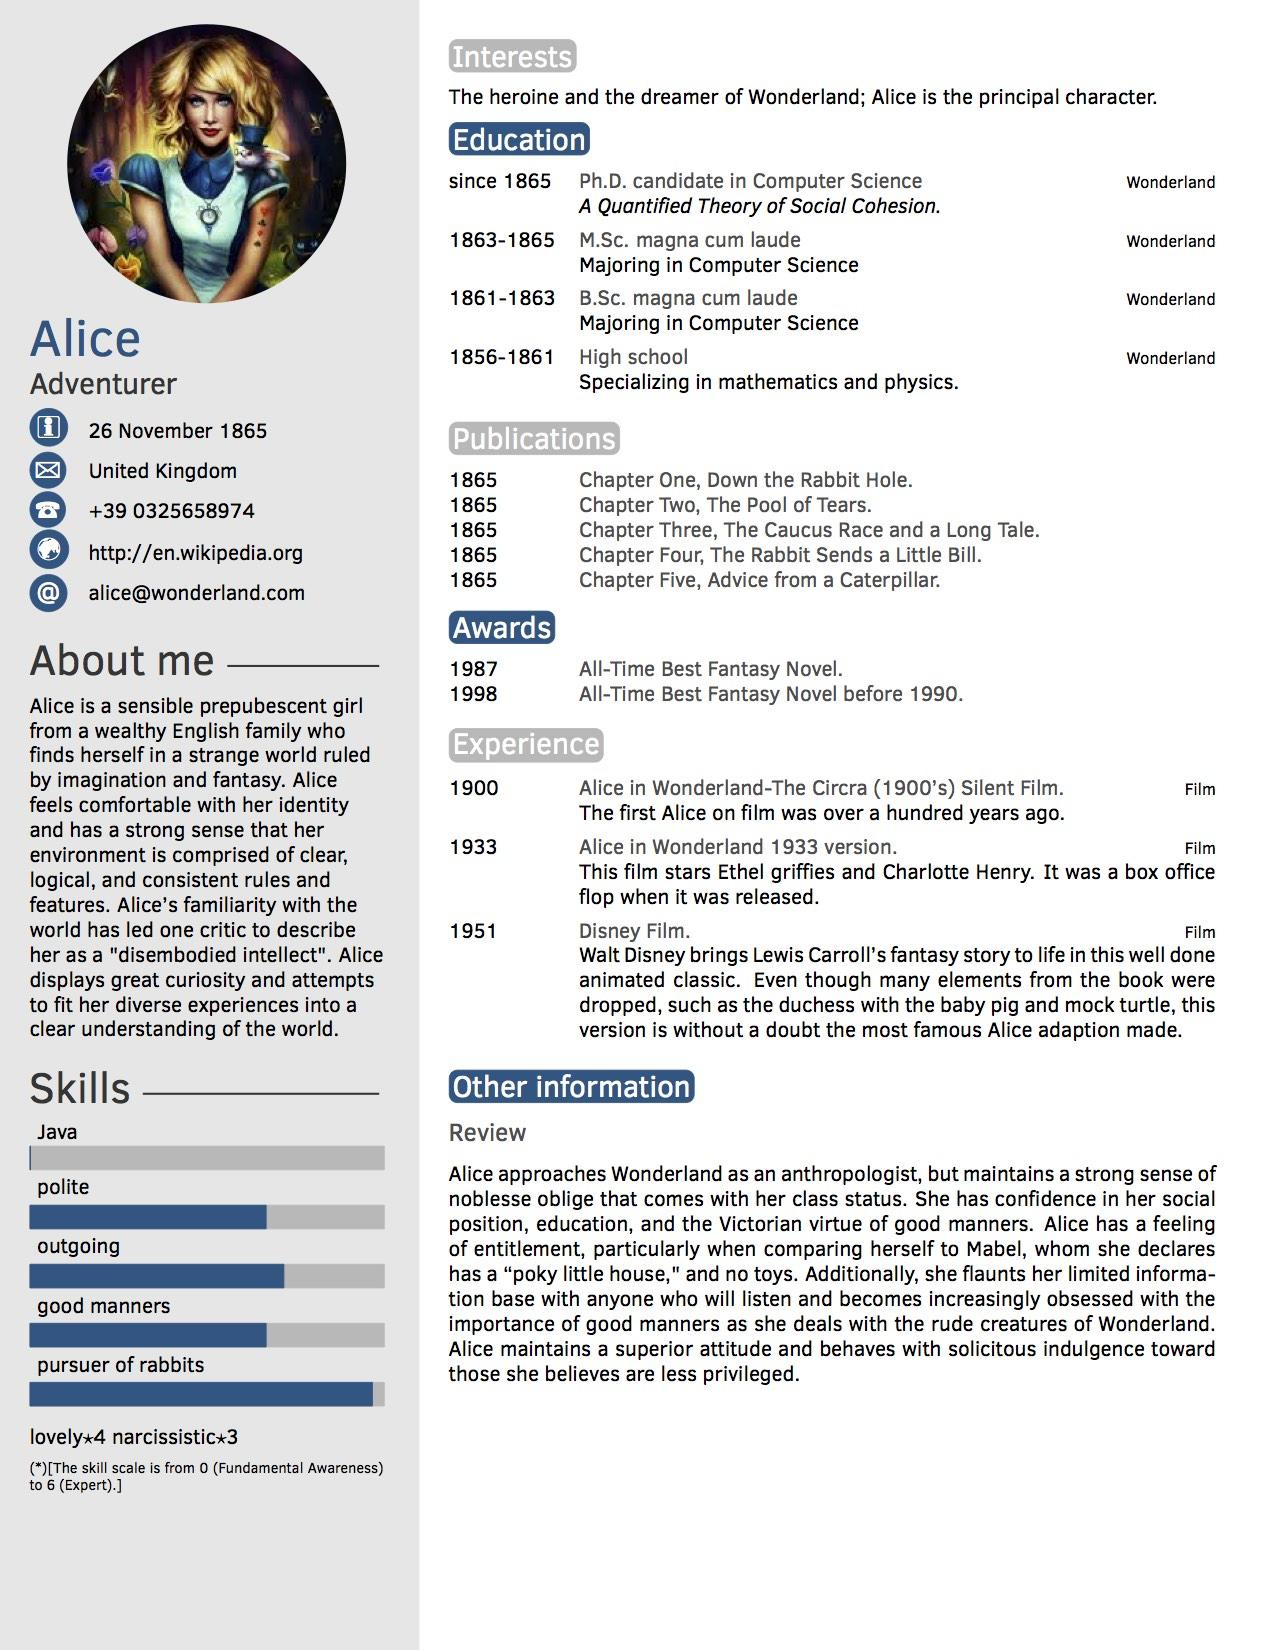 23 Excellent Perfect Cv Format for Images